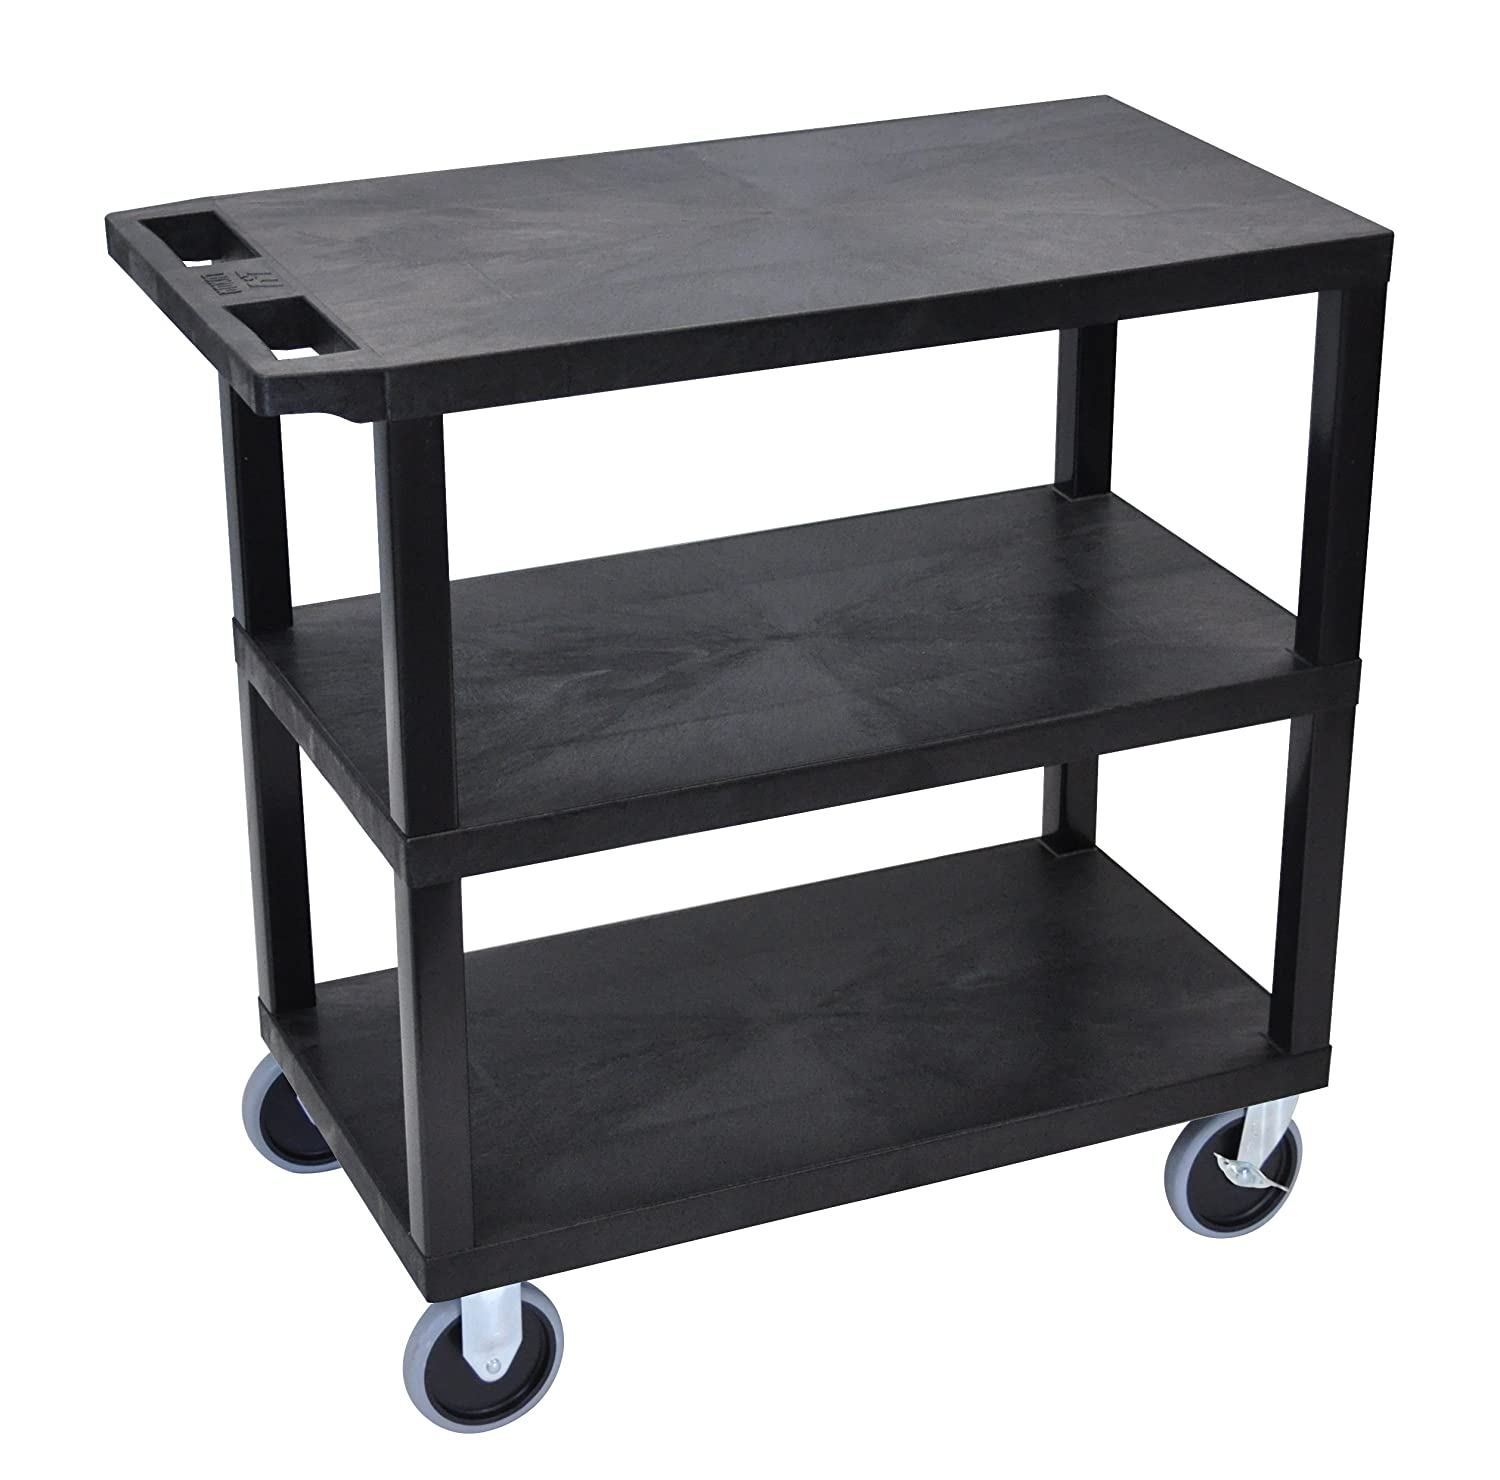 LUXOR EC222HD-B Cart with 3 Flat Shelves, 18 x 32, Black 18 x 32 LUXEC222HD-B